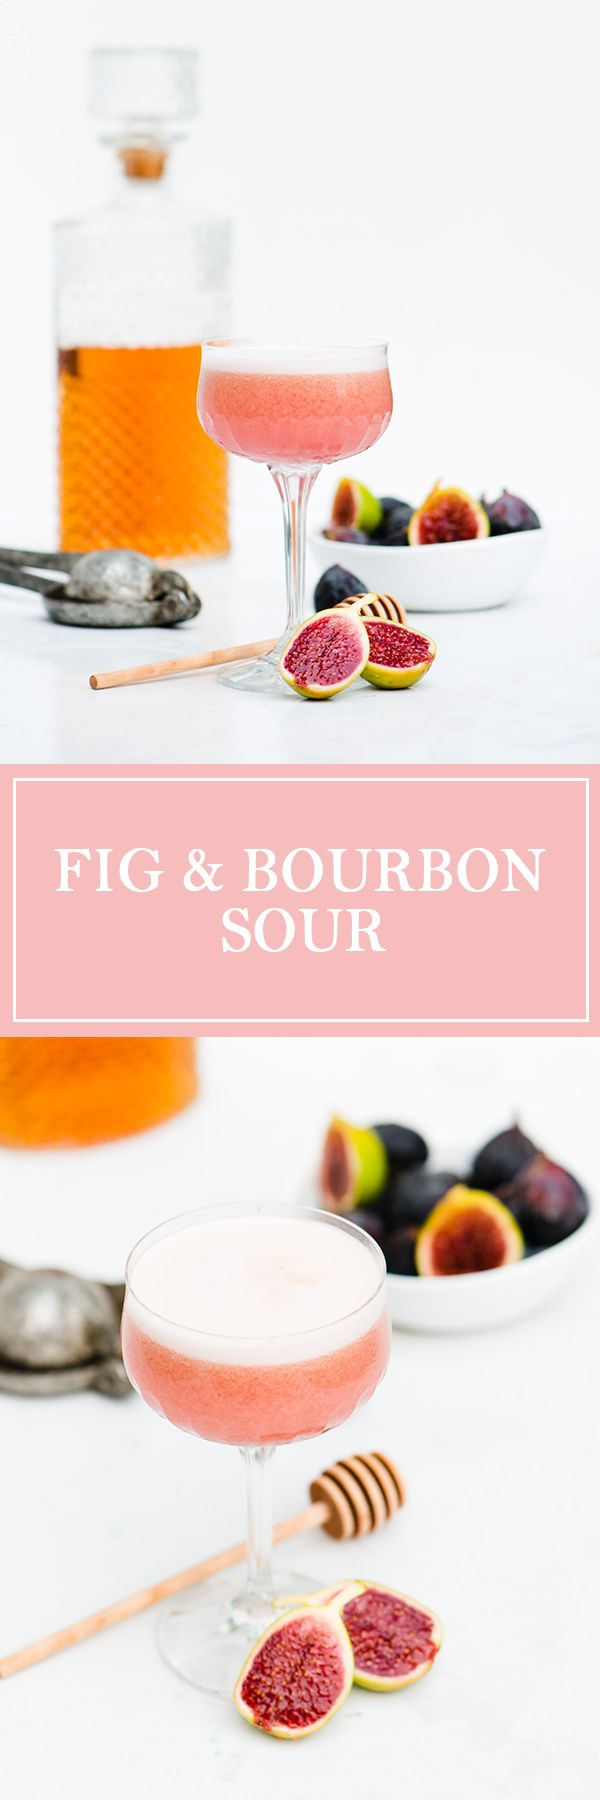 Fig & Bourbon Sour